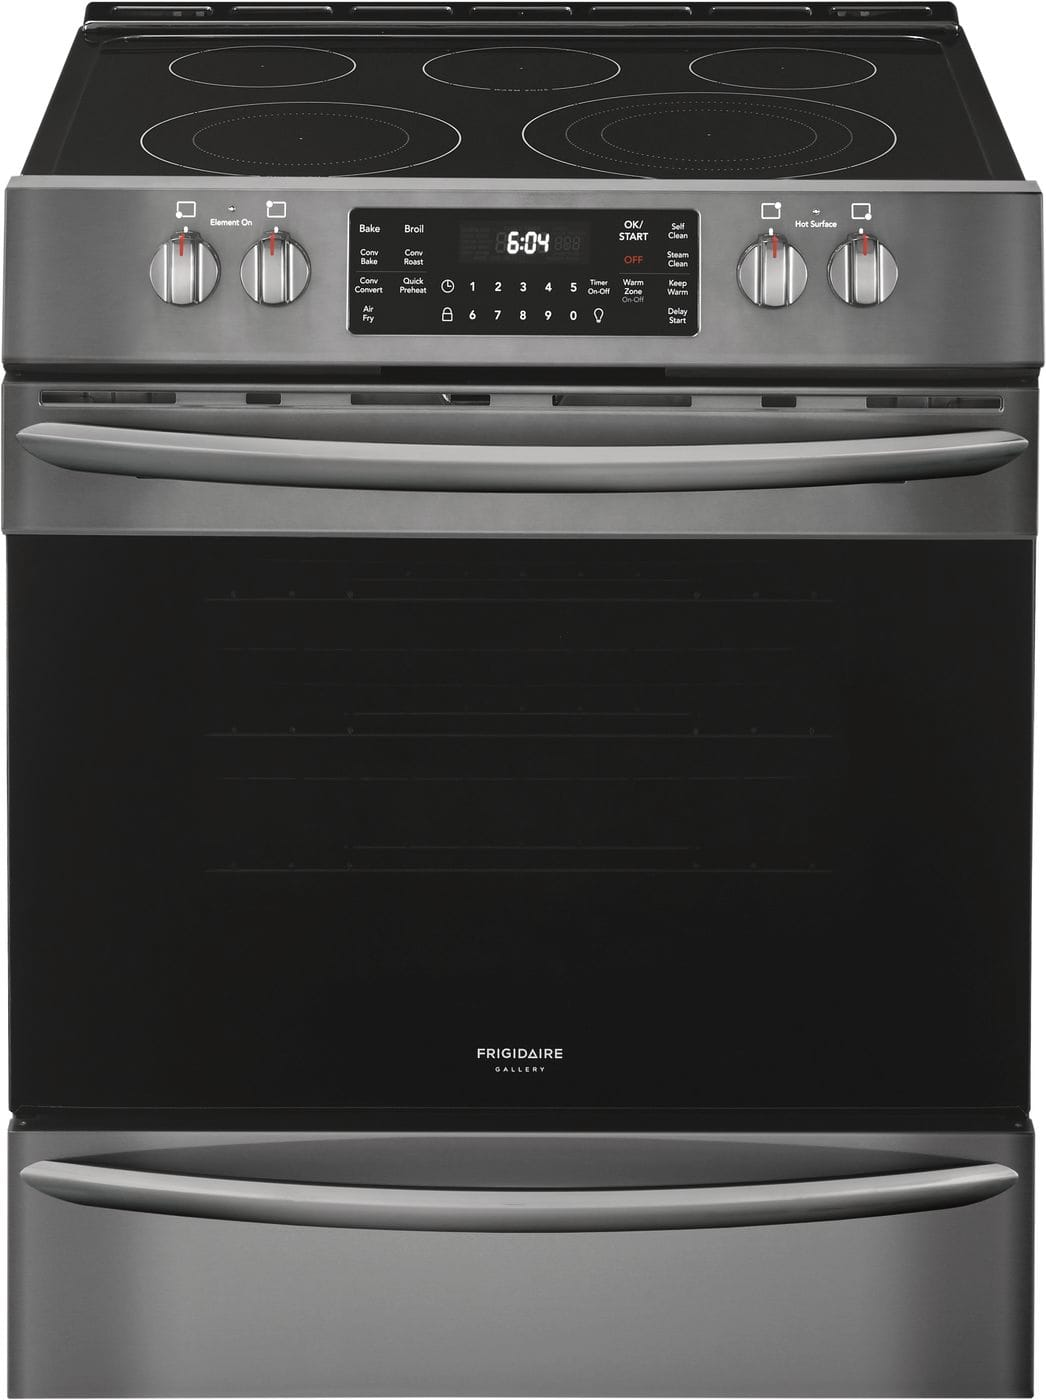 "Frigidaire 30"" Front Control Electric Range with Air Fry"